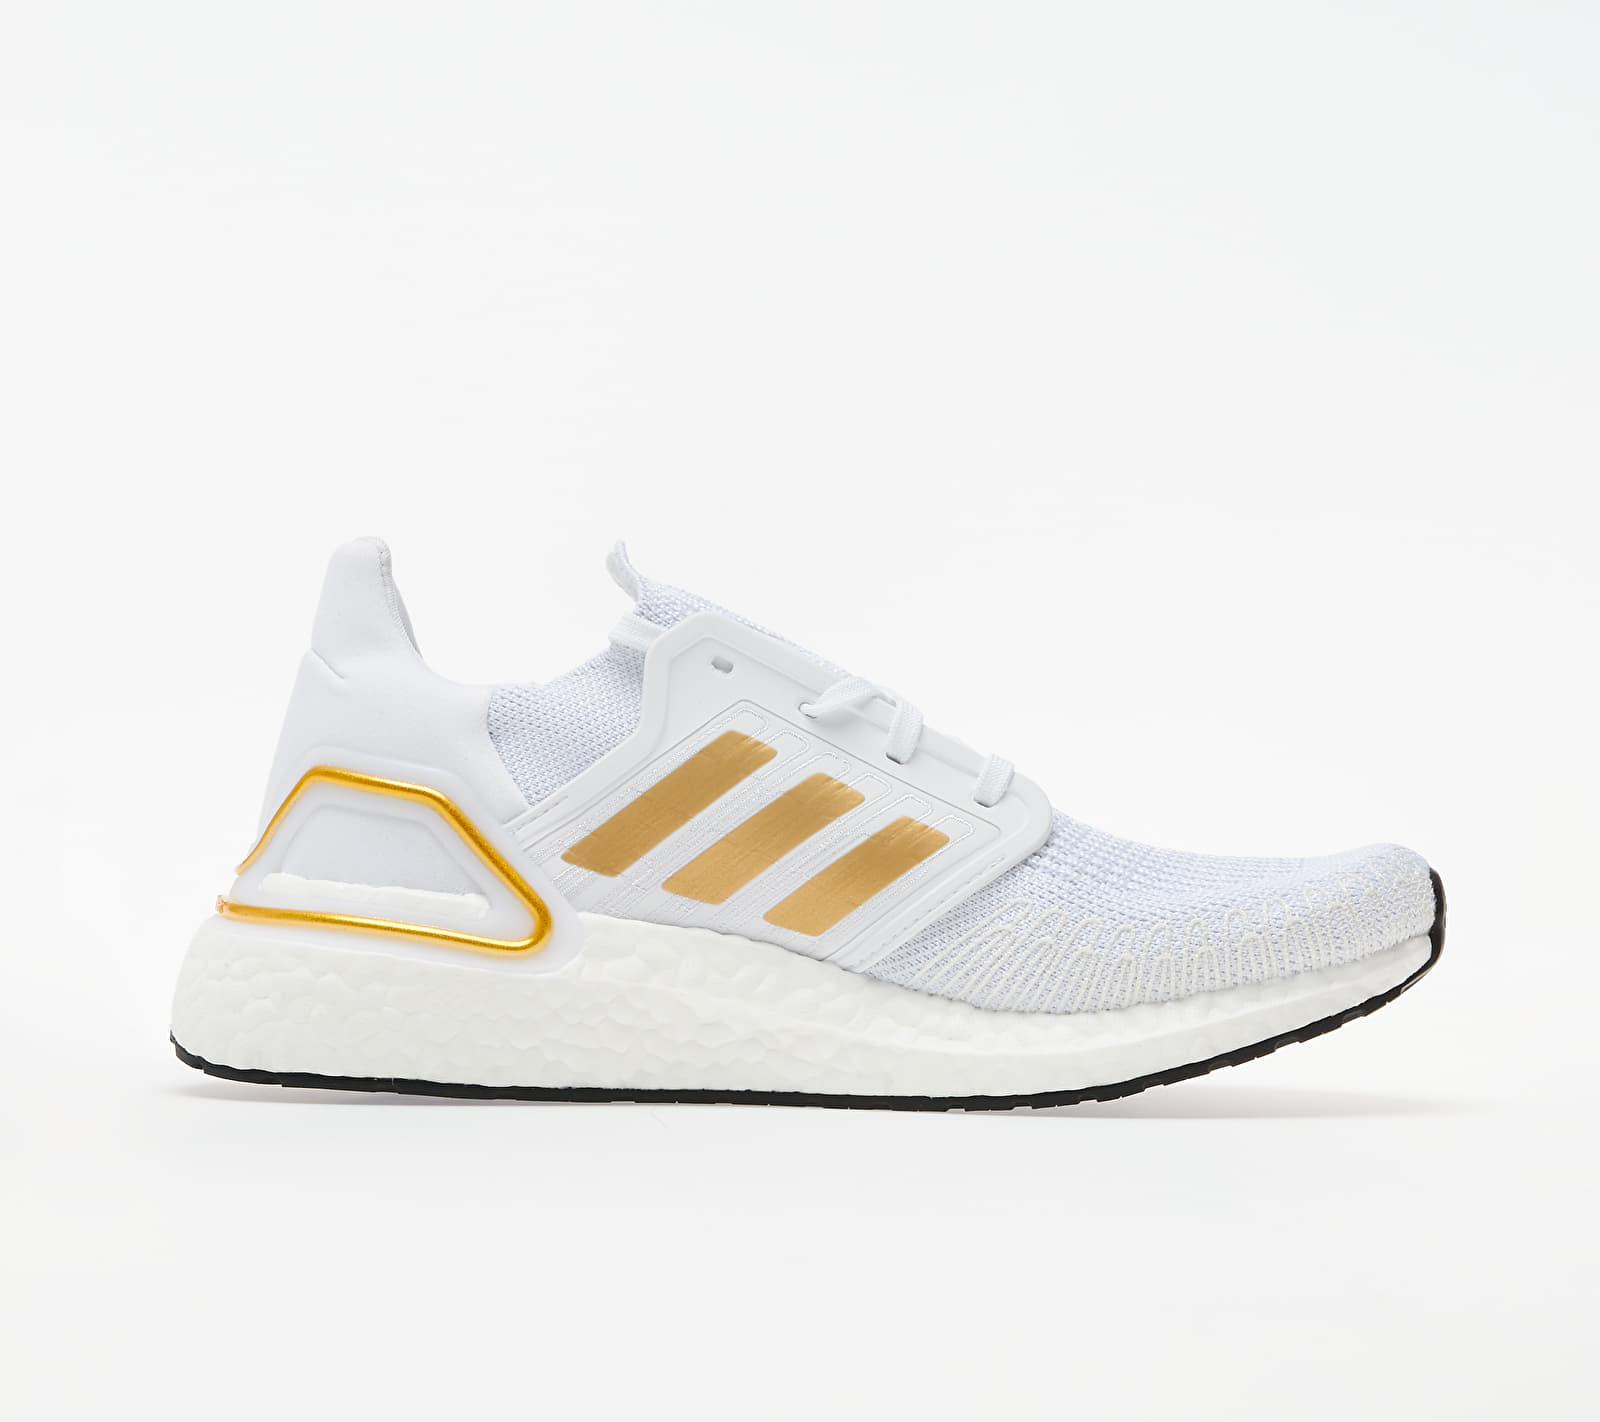 adidas UltraBOOST 20 W Ftw White/ Gold Metalic/ Core Black